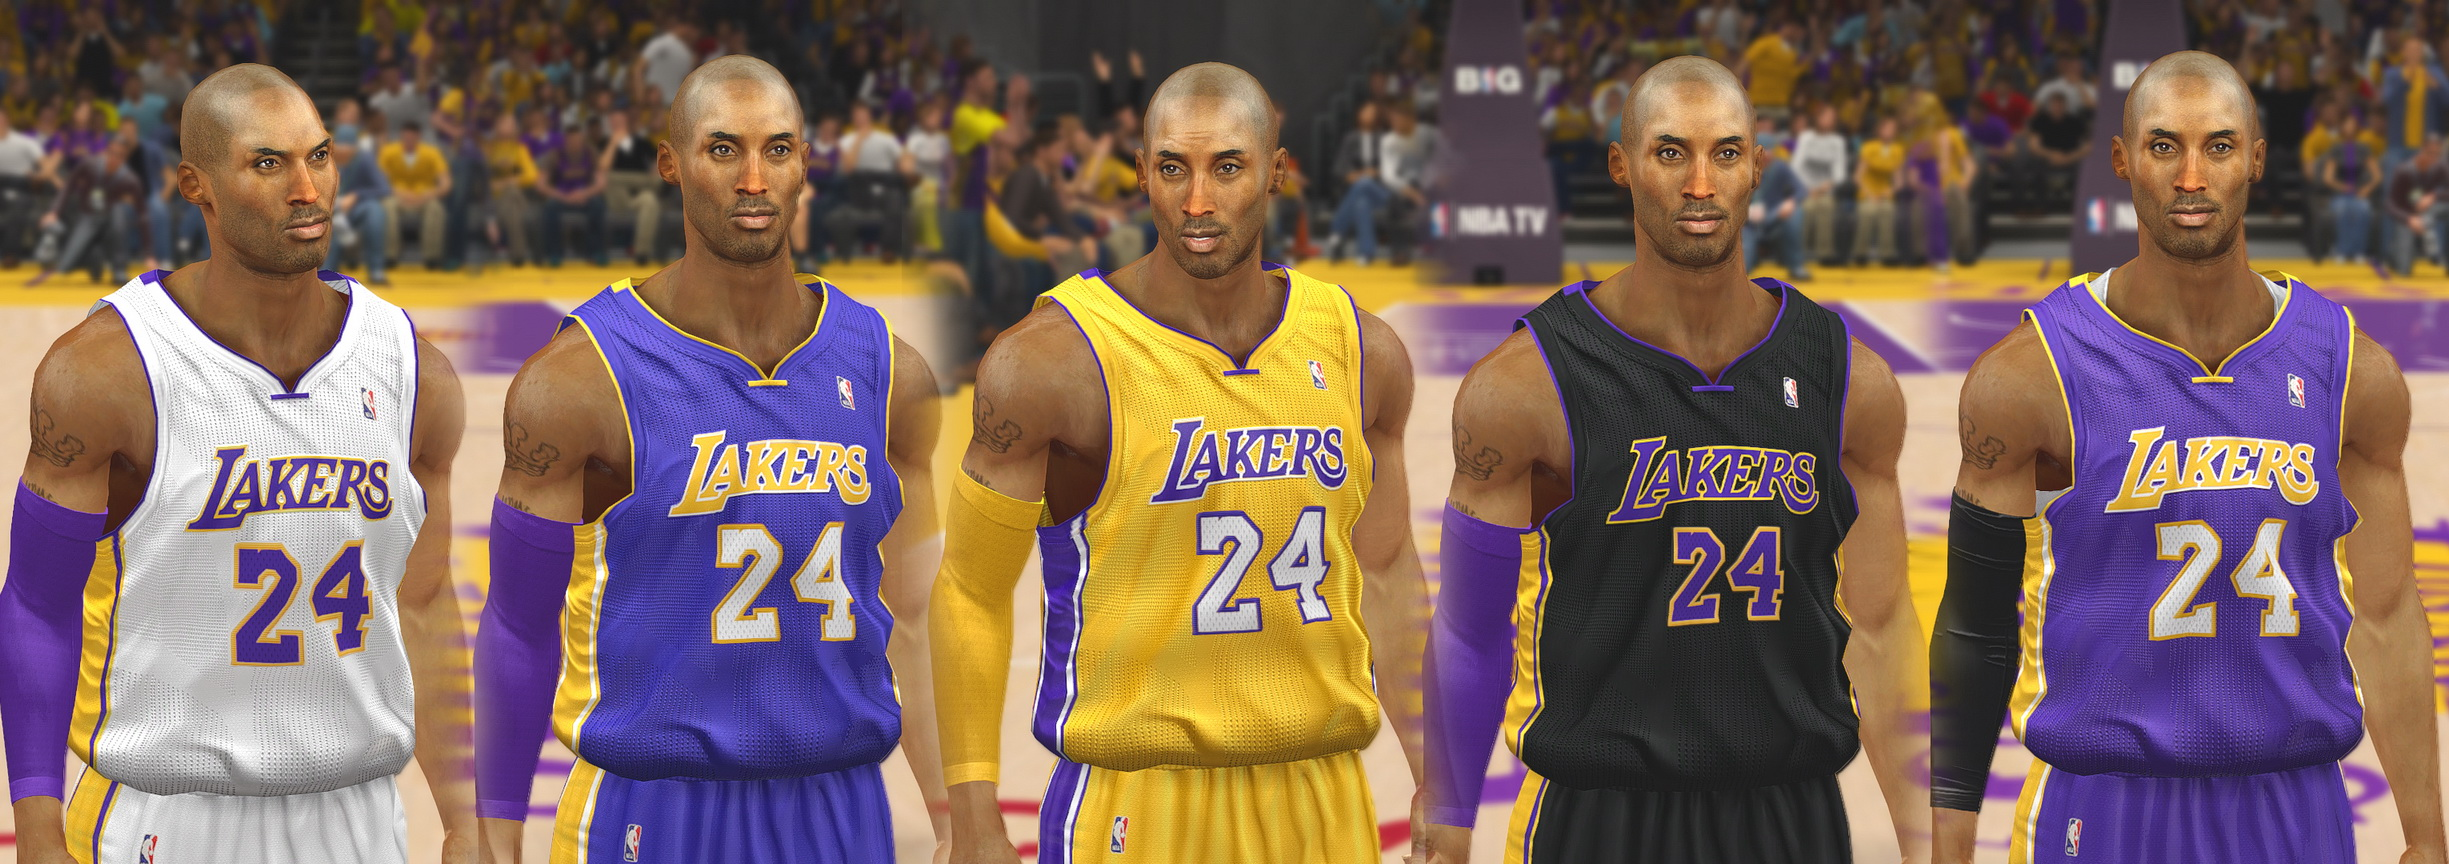 Los Angeles Lakers Jersey Update